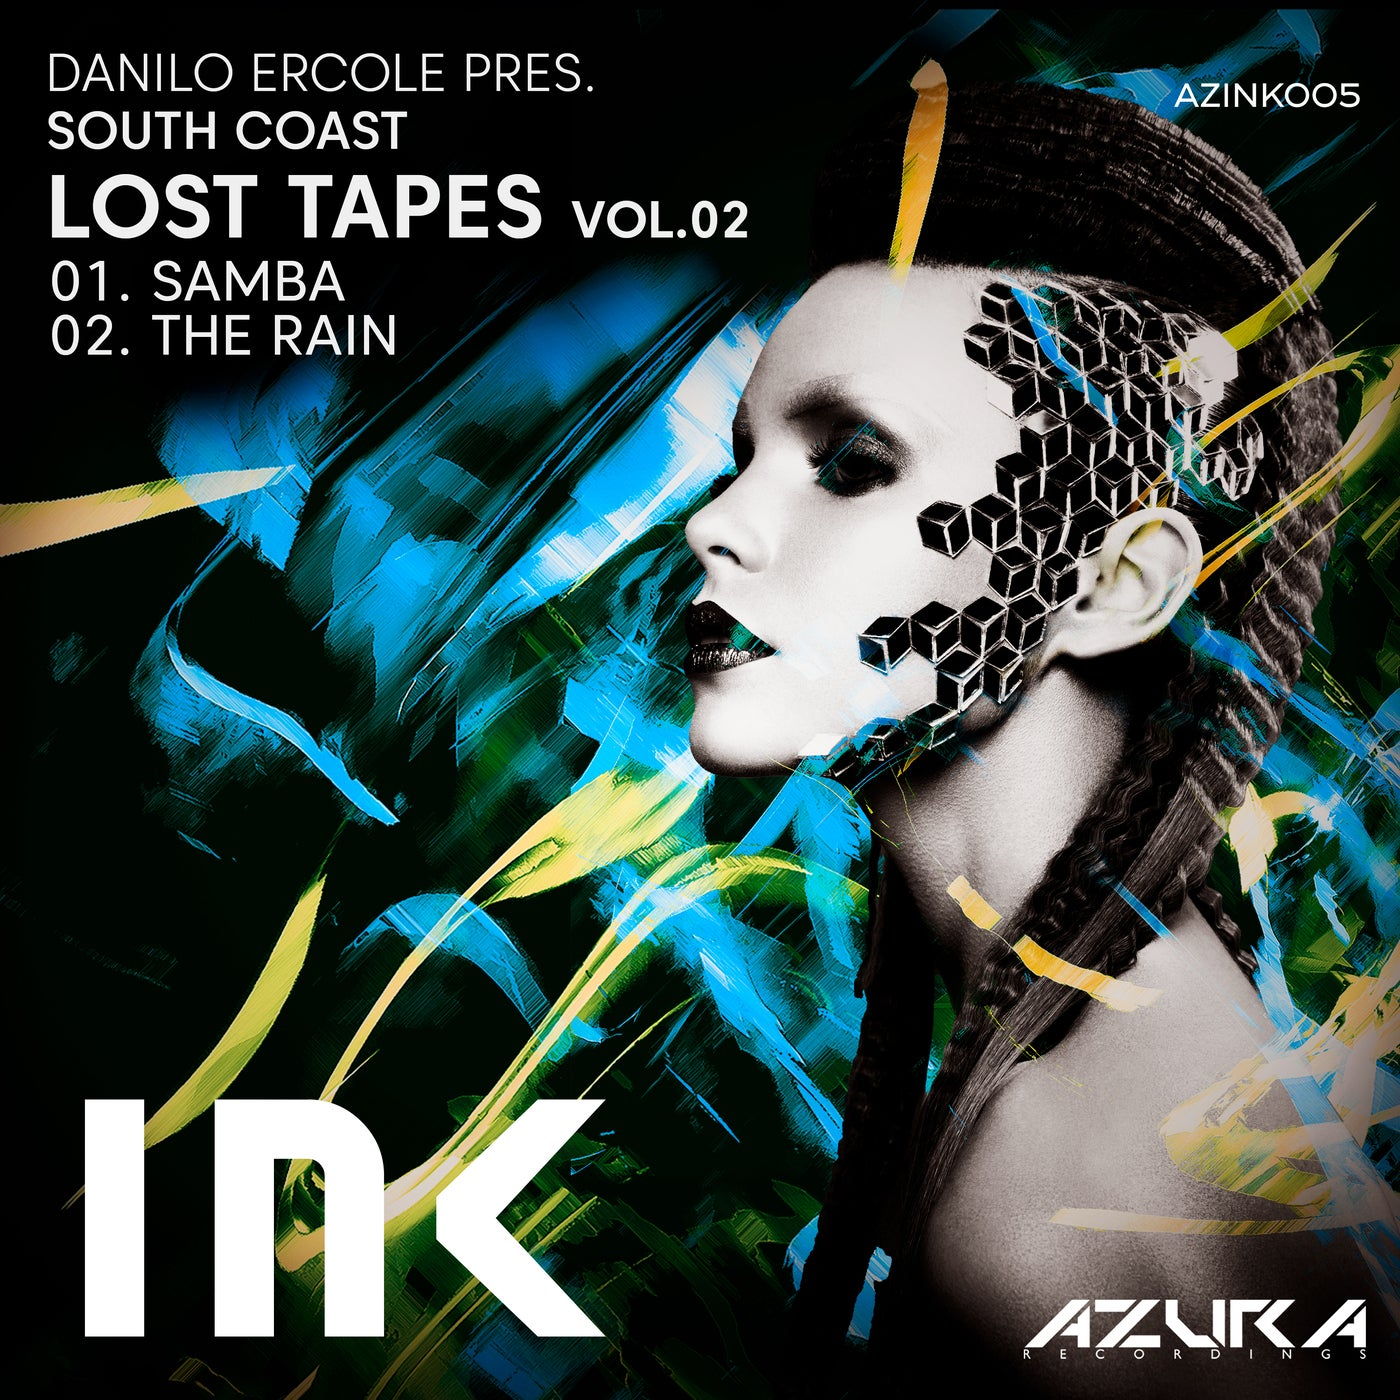 Danilo Ercole - Lost Tapes, Vol. 02 (2021)